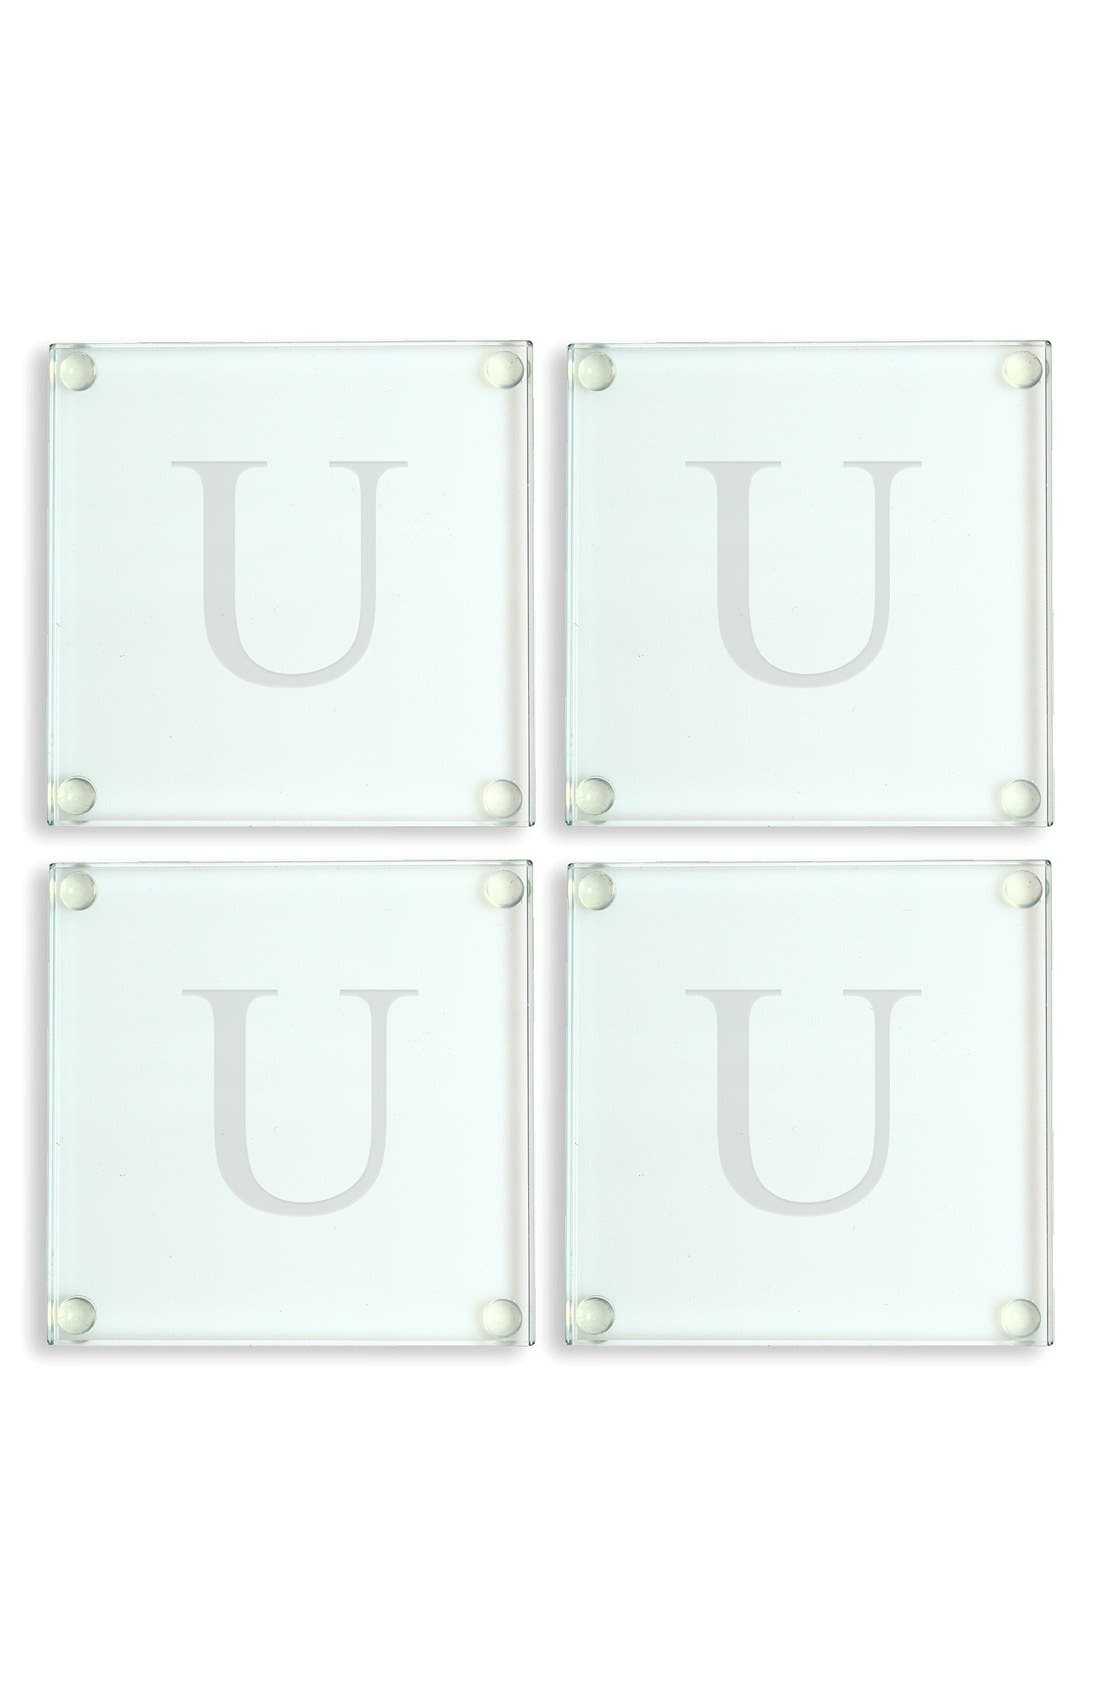 Main Image - Cathy's Concepts Monogram Glass Coasters (Set of 4)